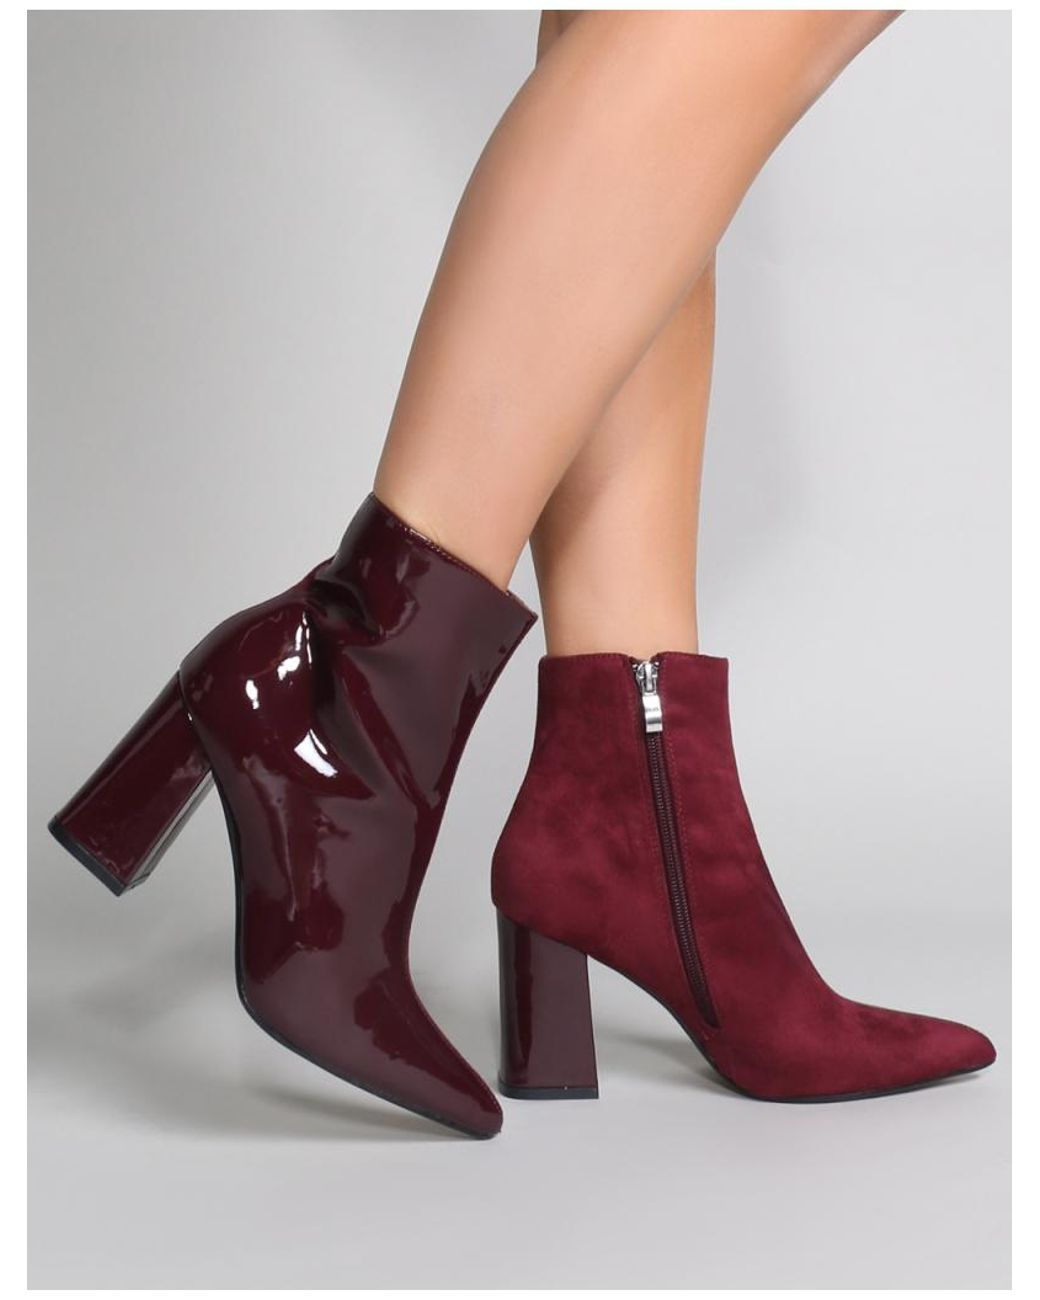 2356e3c99a1 Women's Chaos Contrast Pointed Toe Ankle Boots In Burgundy Patent And Faux  Suede